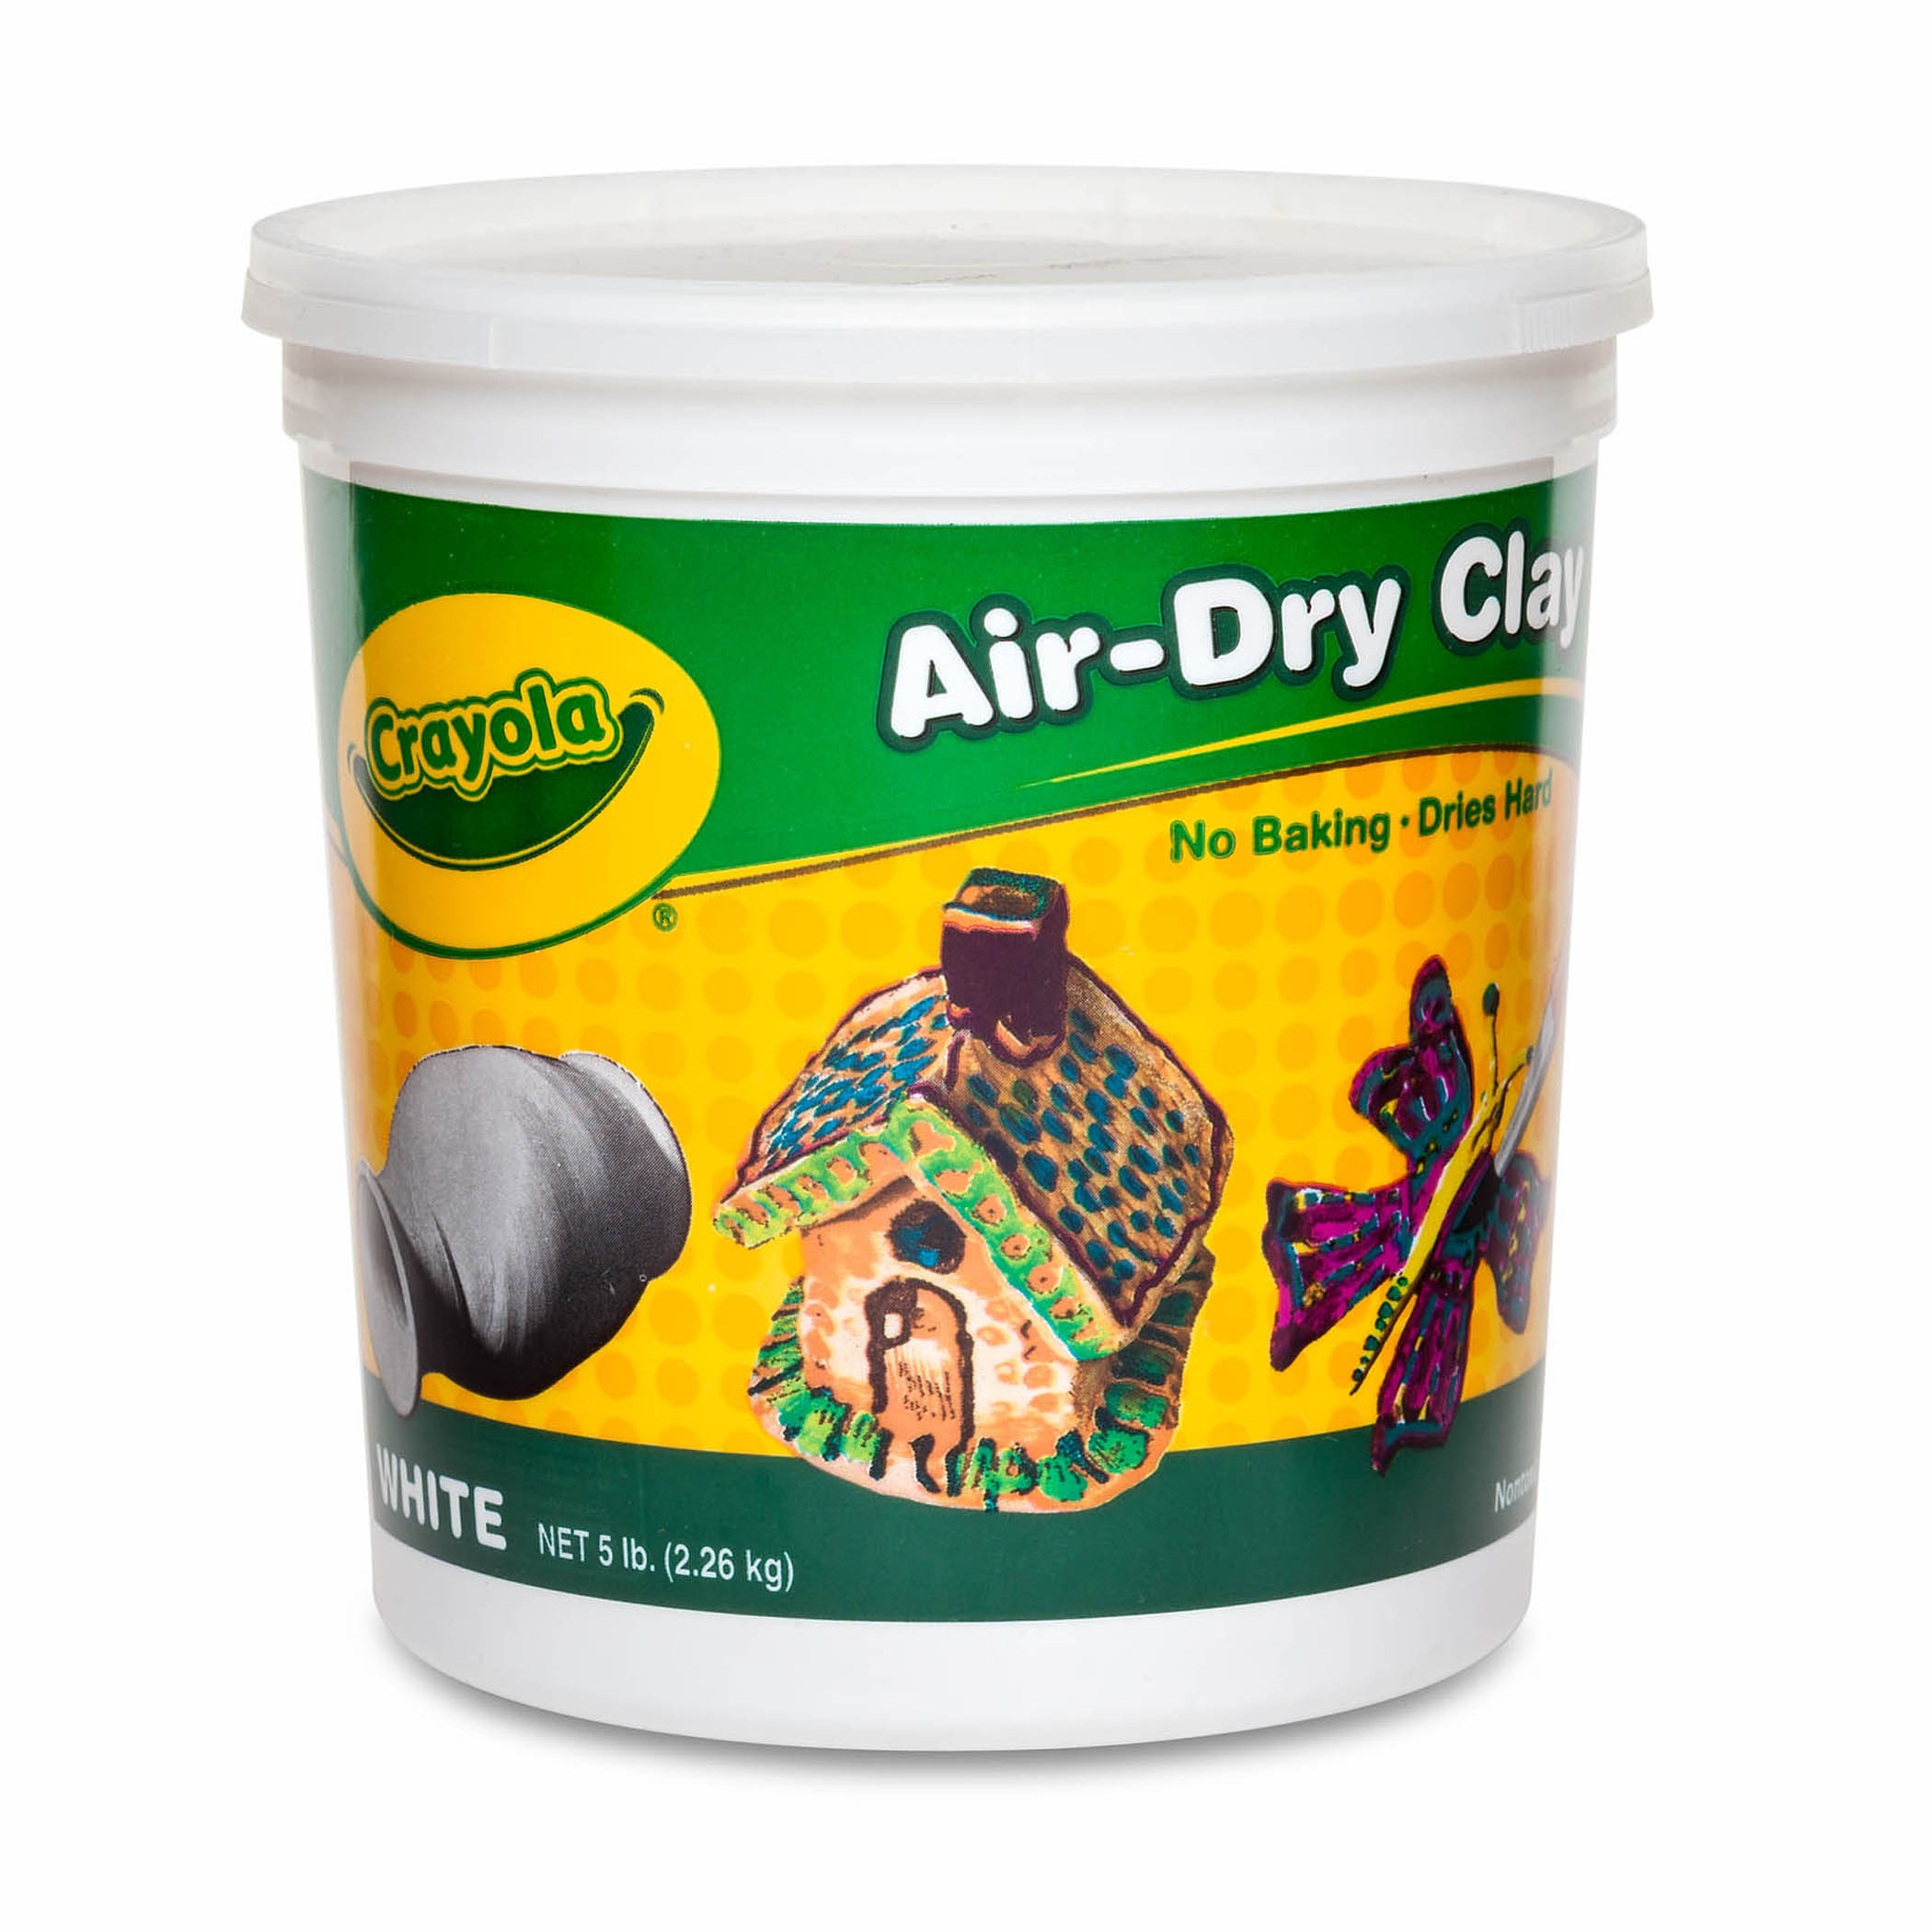 Crayola® Air-Dry Clay, White - 5 lb per pack, 2 packs